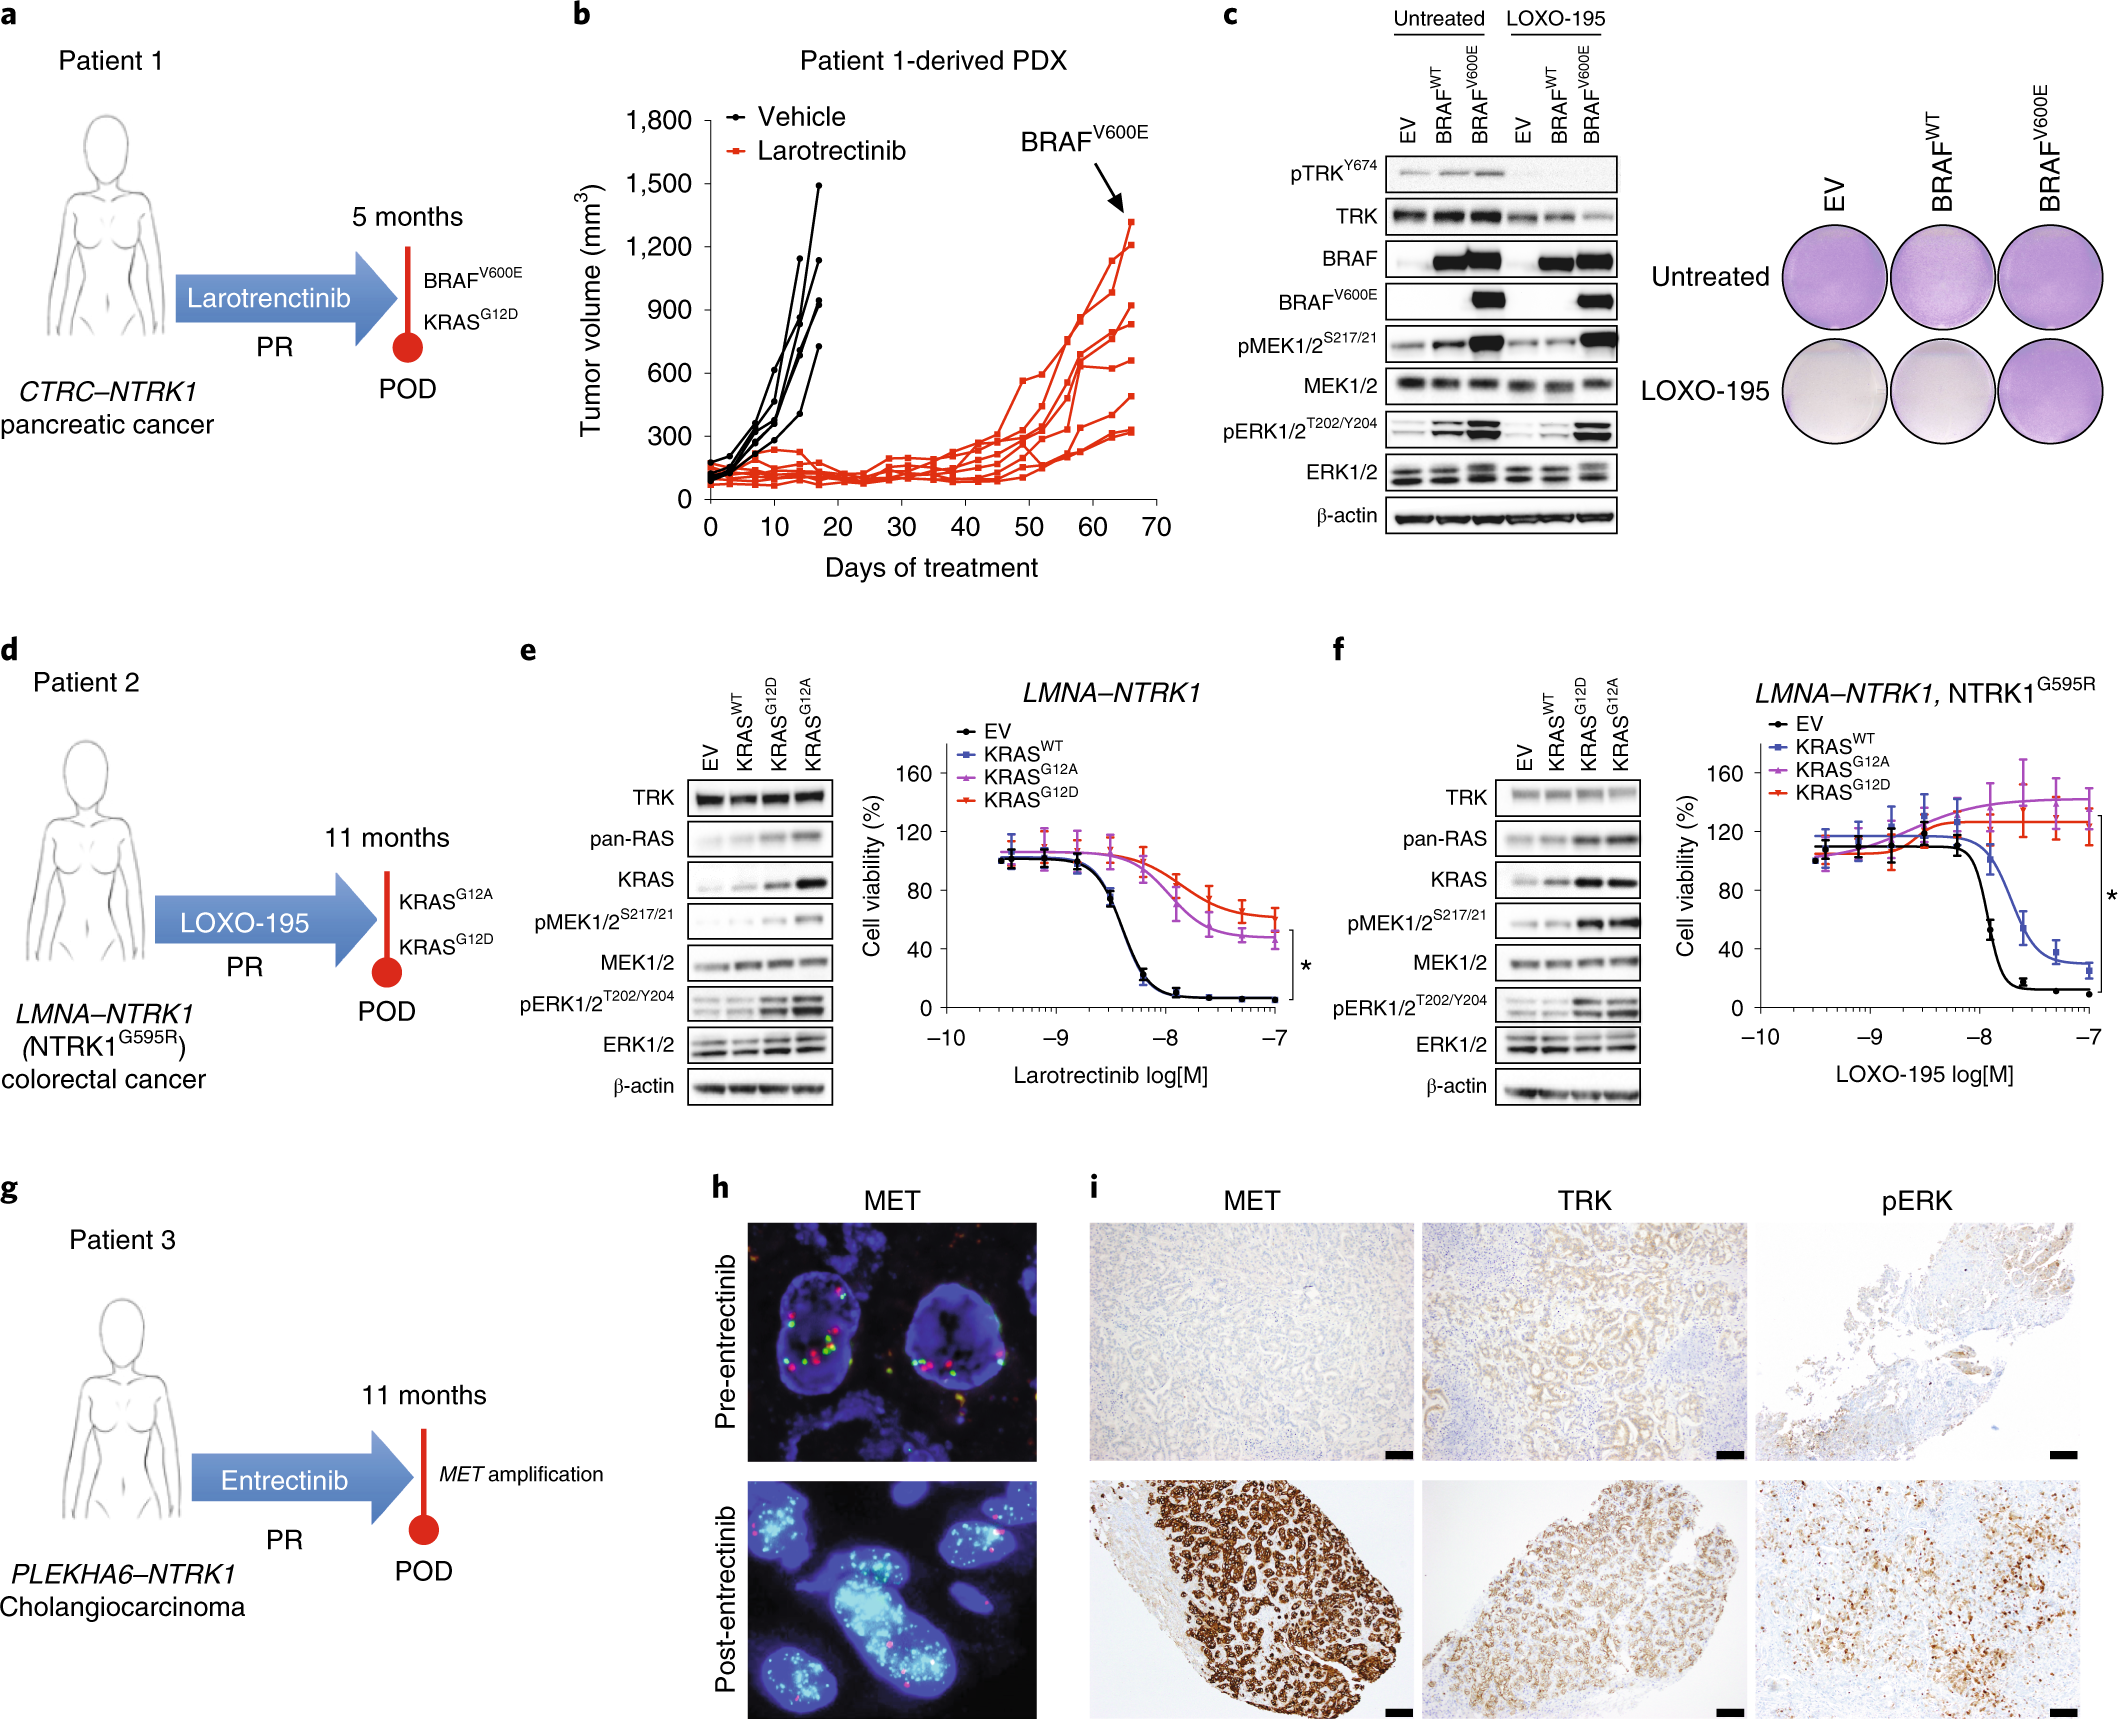 Resistance to TRK inhibition mediated by convergent MAPK pathway activ